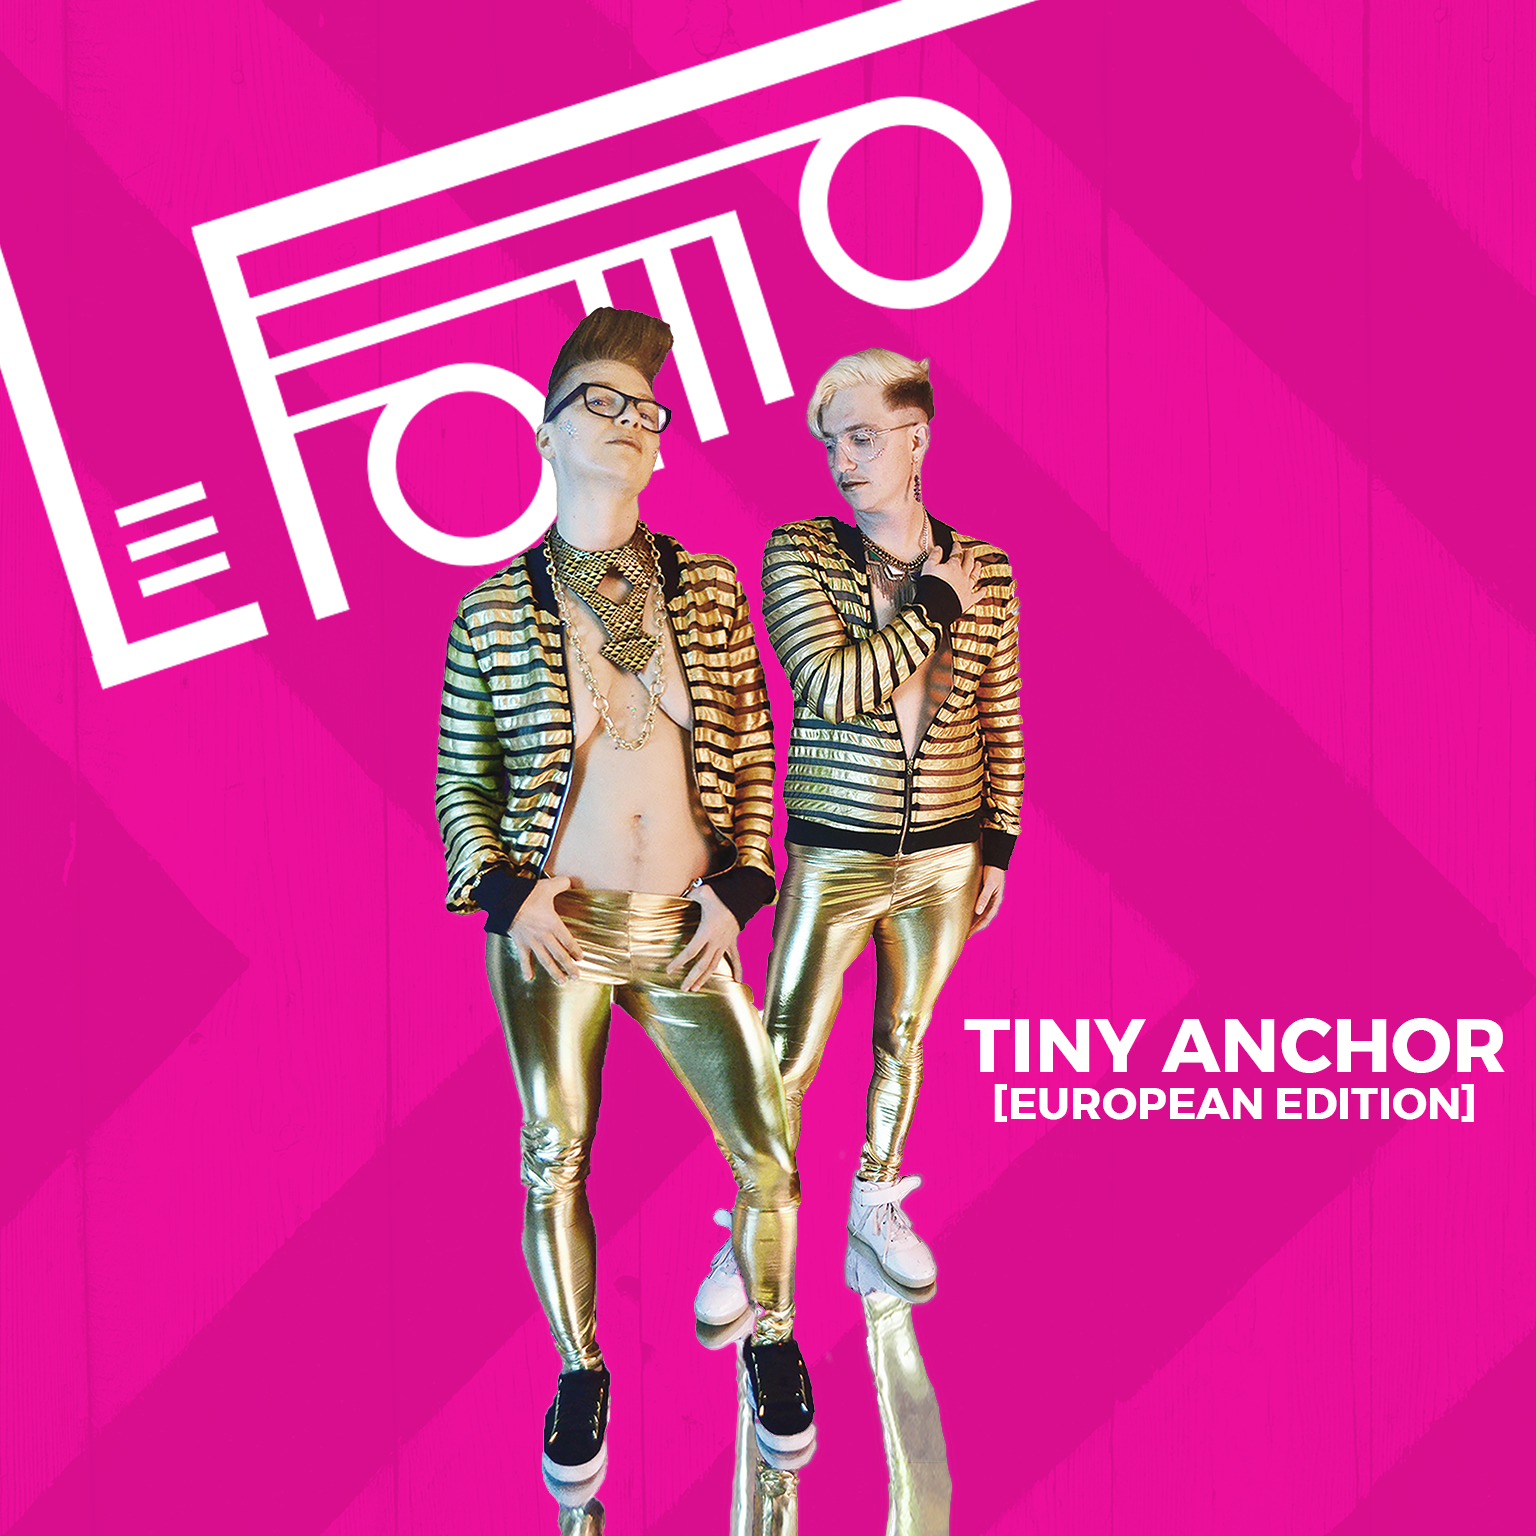 Le Fomo - Tiny Anchor